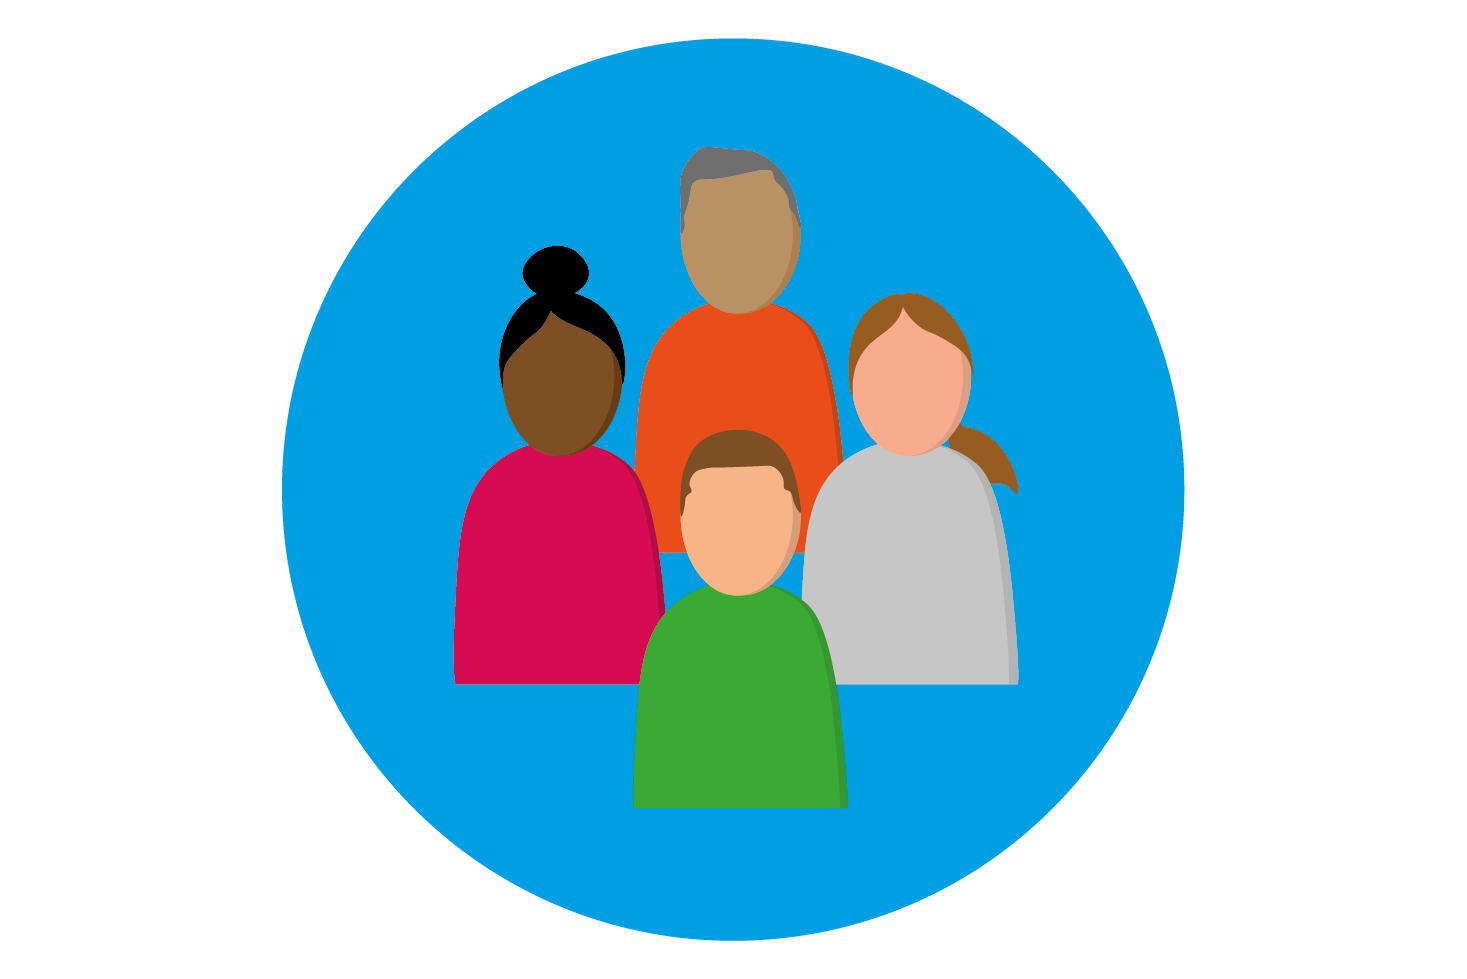 An icon of four abstract people in a blue circle